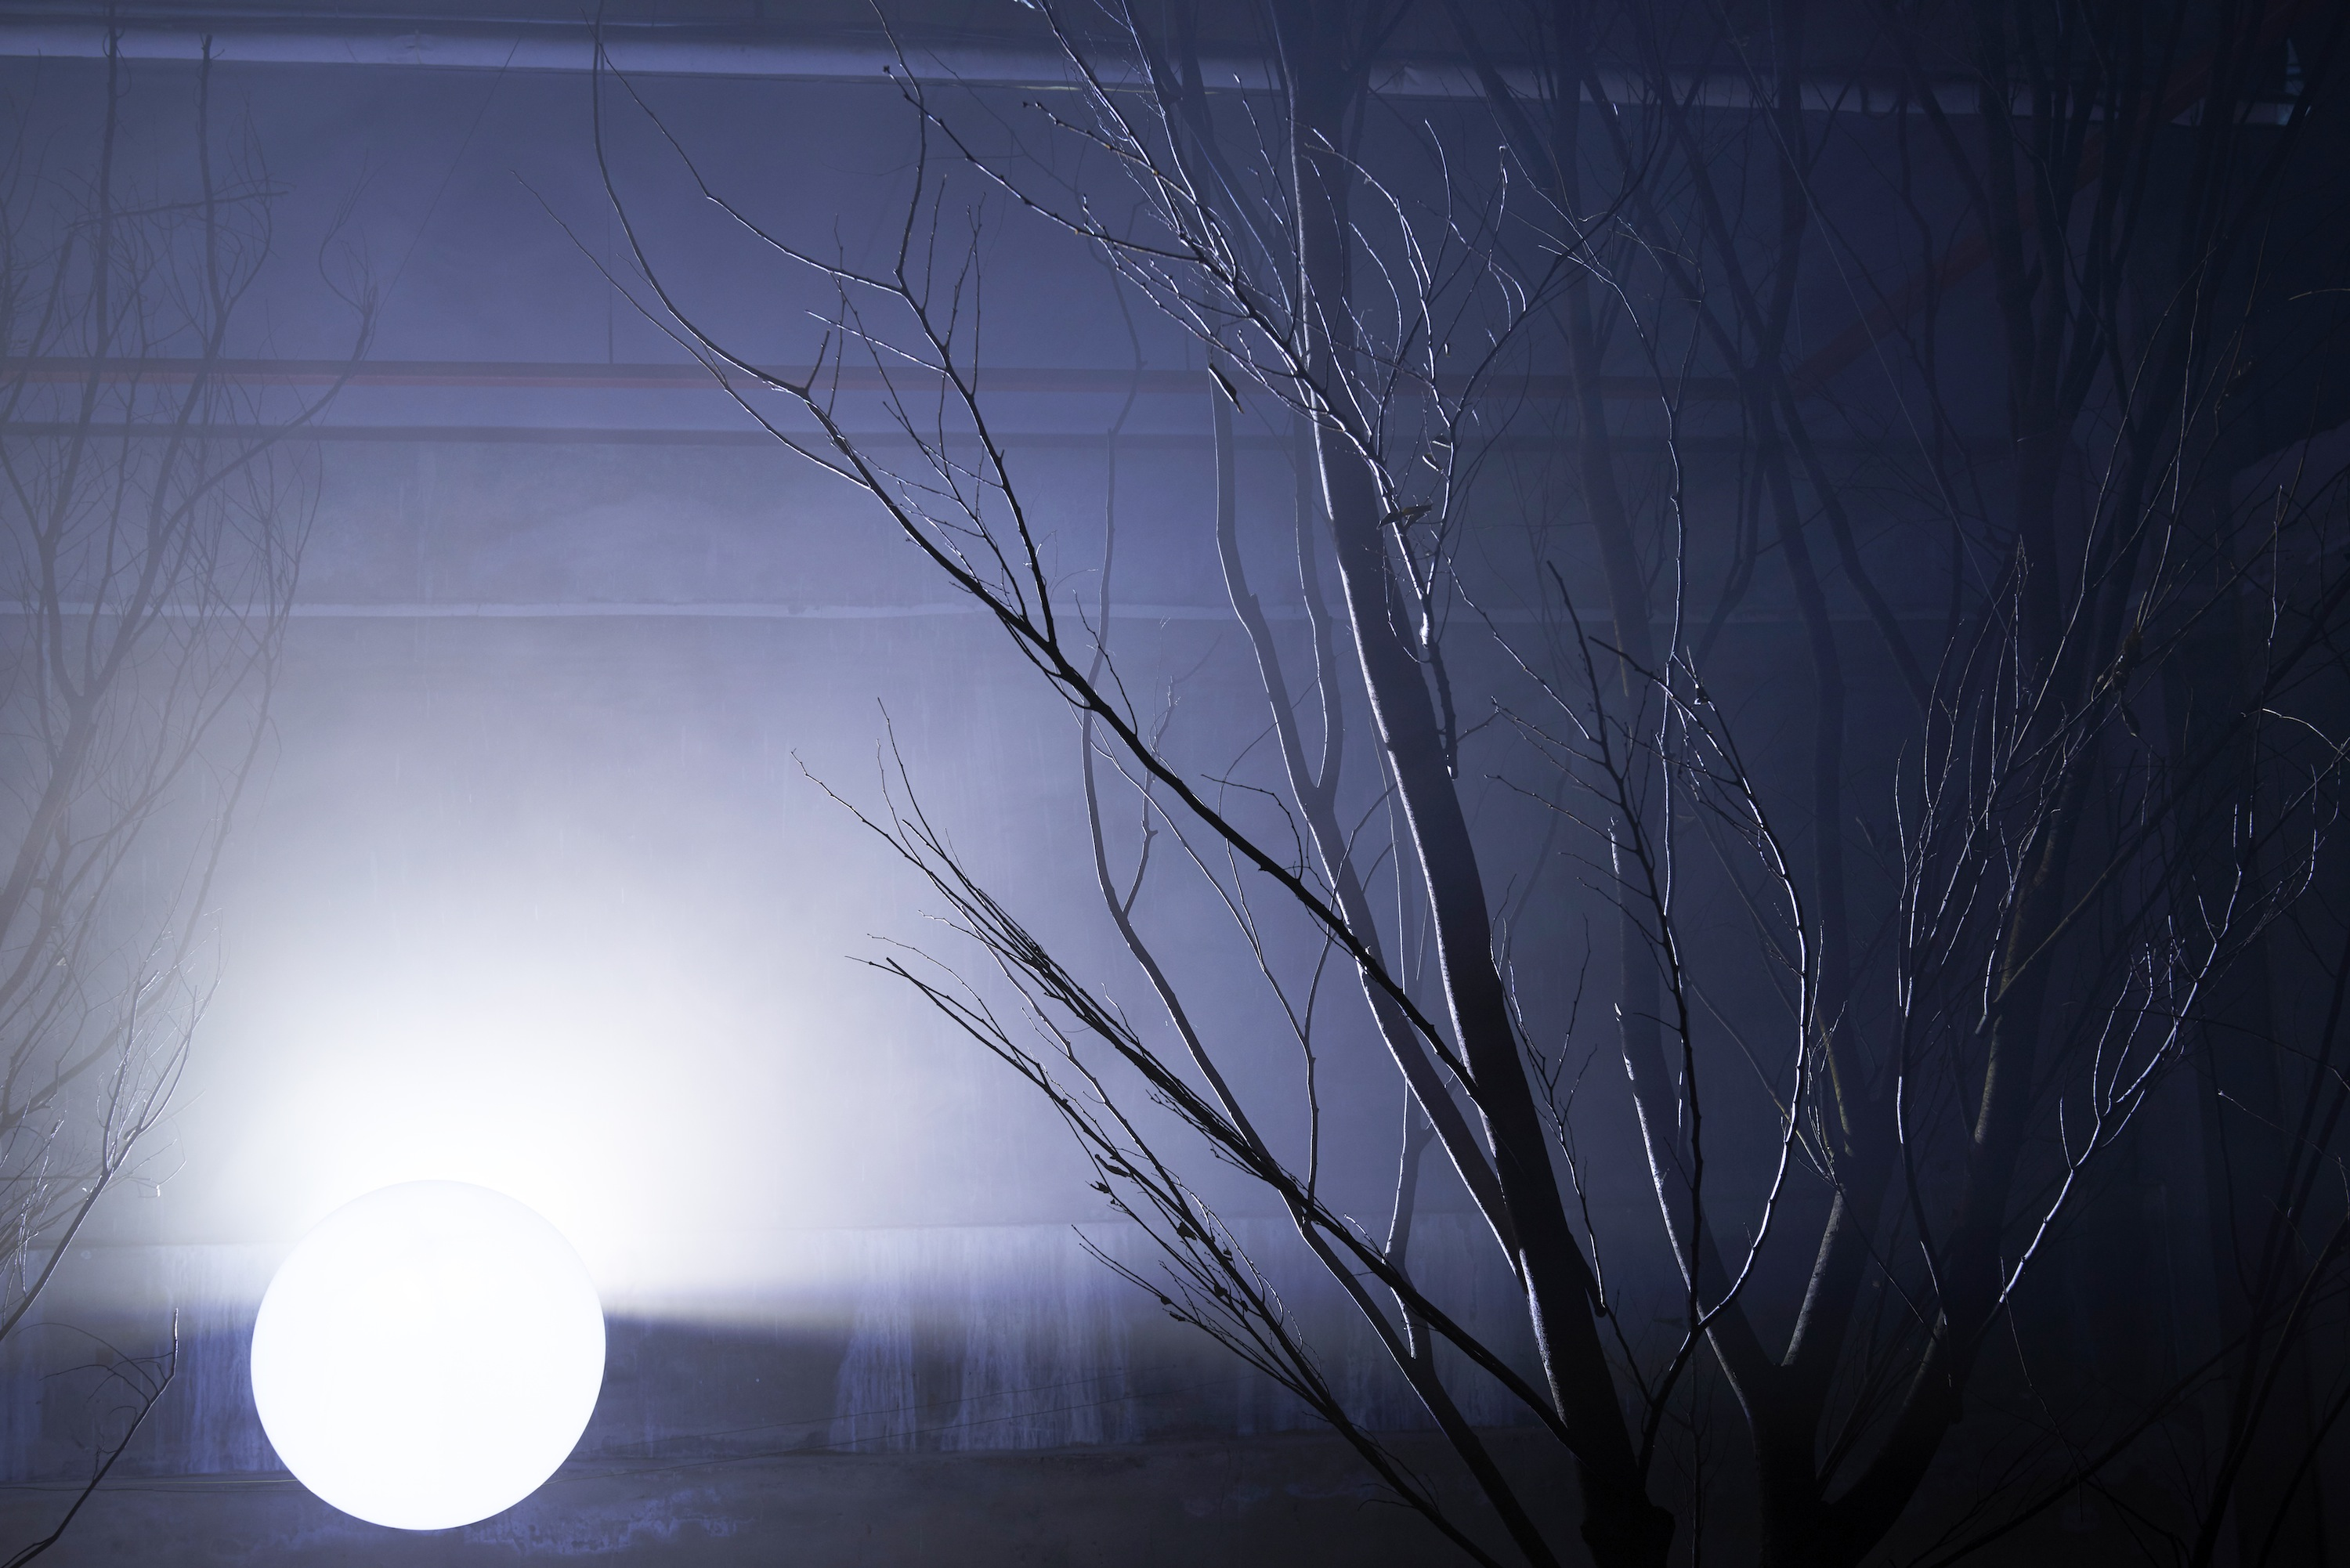 A Singularity (installation) | David Ogle, 2017 | birch trees, acrylic sphere, spotlight, haze machine | installation view: Cheongju, South Korea, 2017 | image: Cheongju Craft Biennale 2017